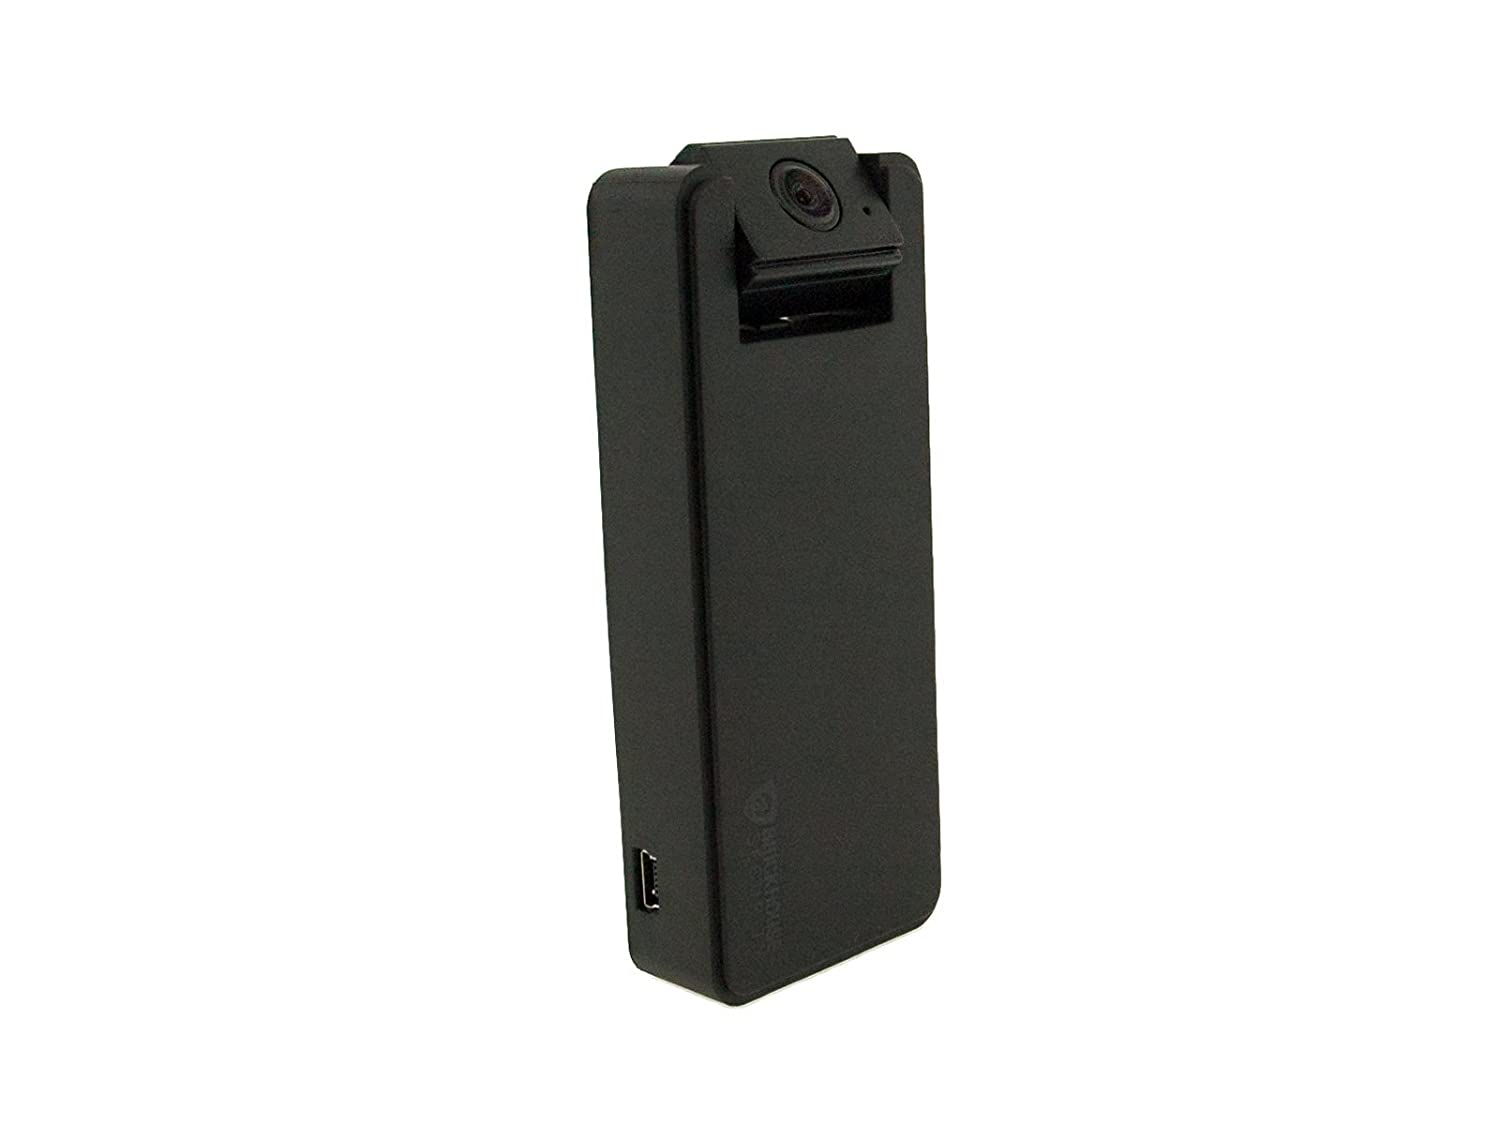 Camscura Tilt Hidden Camera Black Box Covert Home Surveillance and Nanny Camera By Brickhouse Security [並行輸入品] B01MQVPT6W